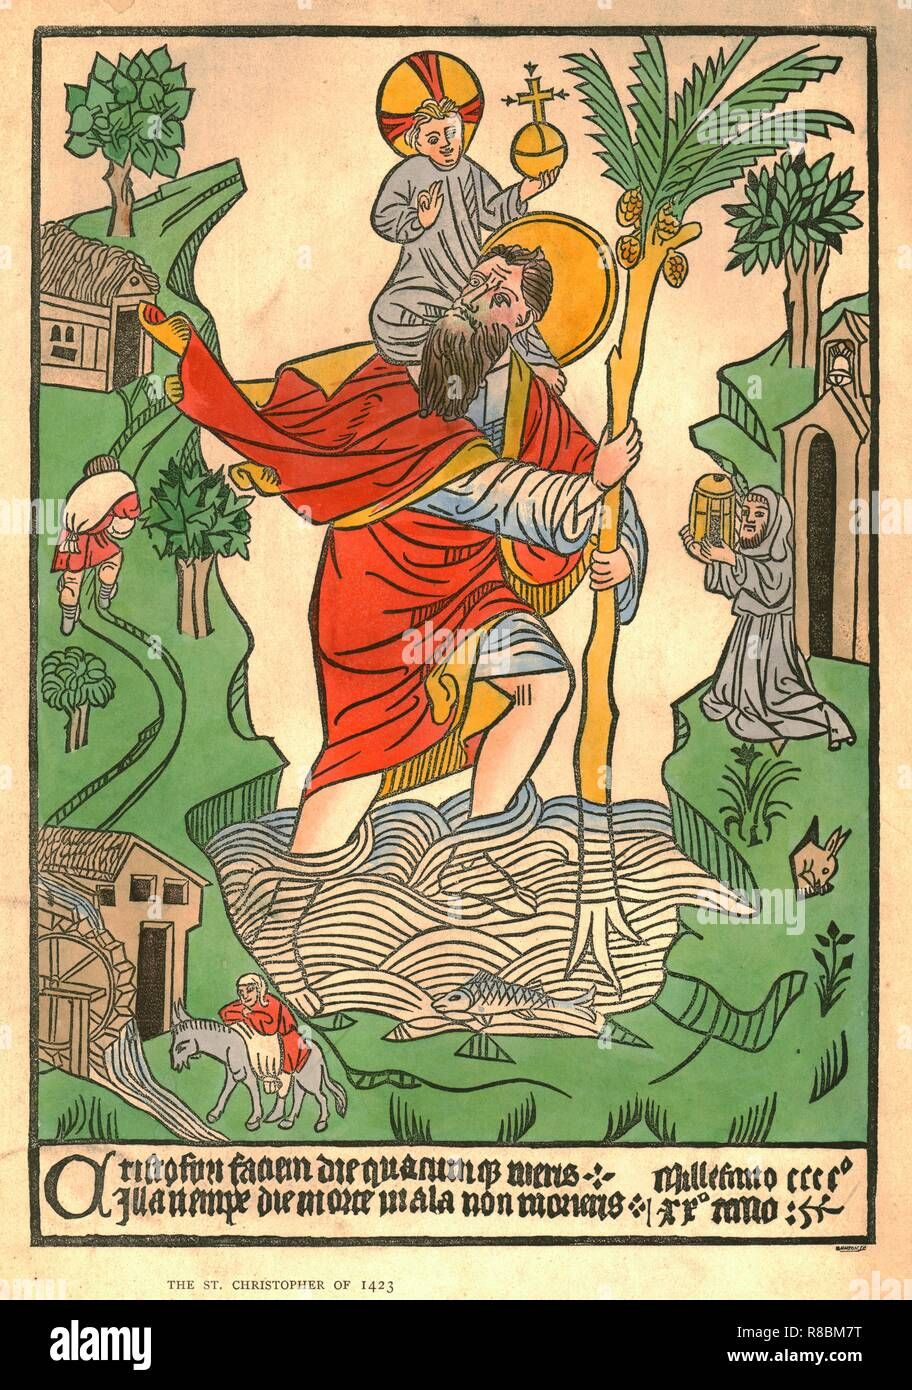 'The St. Christopher of 1423'. The saint carries the Christ-child across a river, using a staff sprouting palm-fronds. The St Christopher Woodcut is the only surviving example of the first piece of European printing bearing a date. Print after a hand-coloured woodcut in the collection of the John Rylands Library, Manchester. - Stock Image